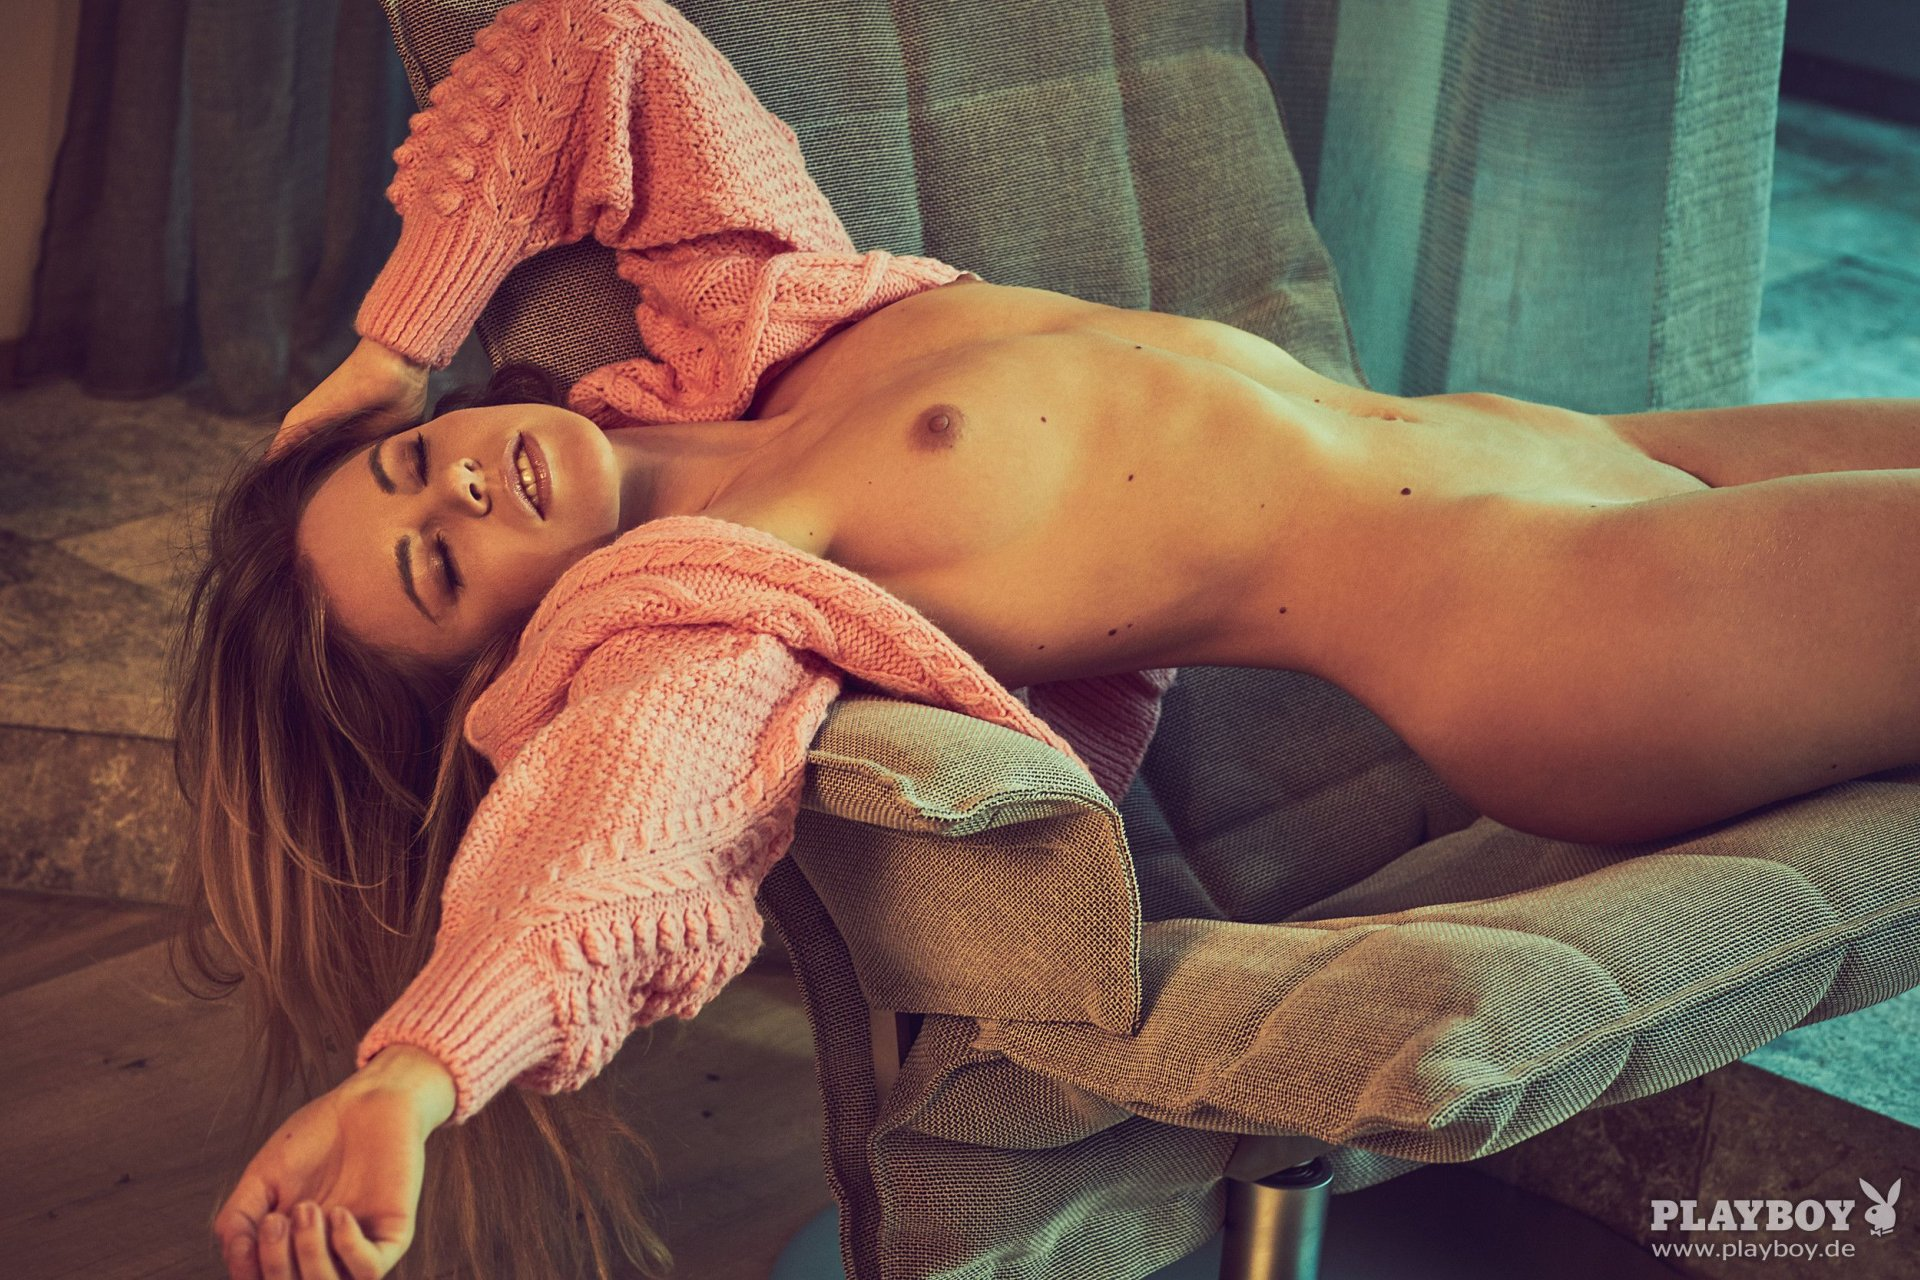 Forum on this topic: Violet rodriguez tits, lisa-zimmermann-tits/